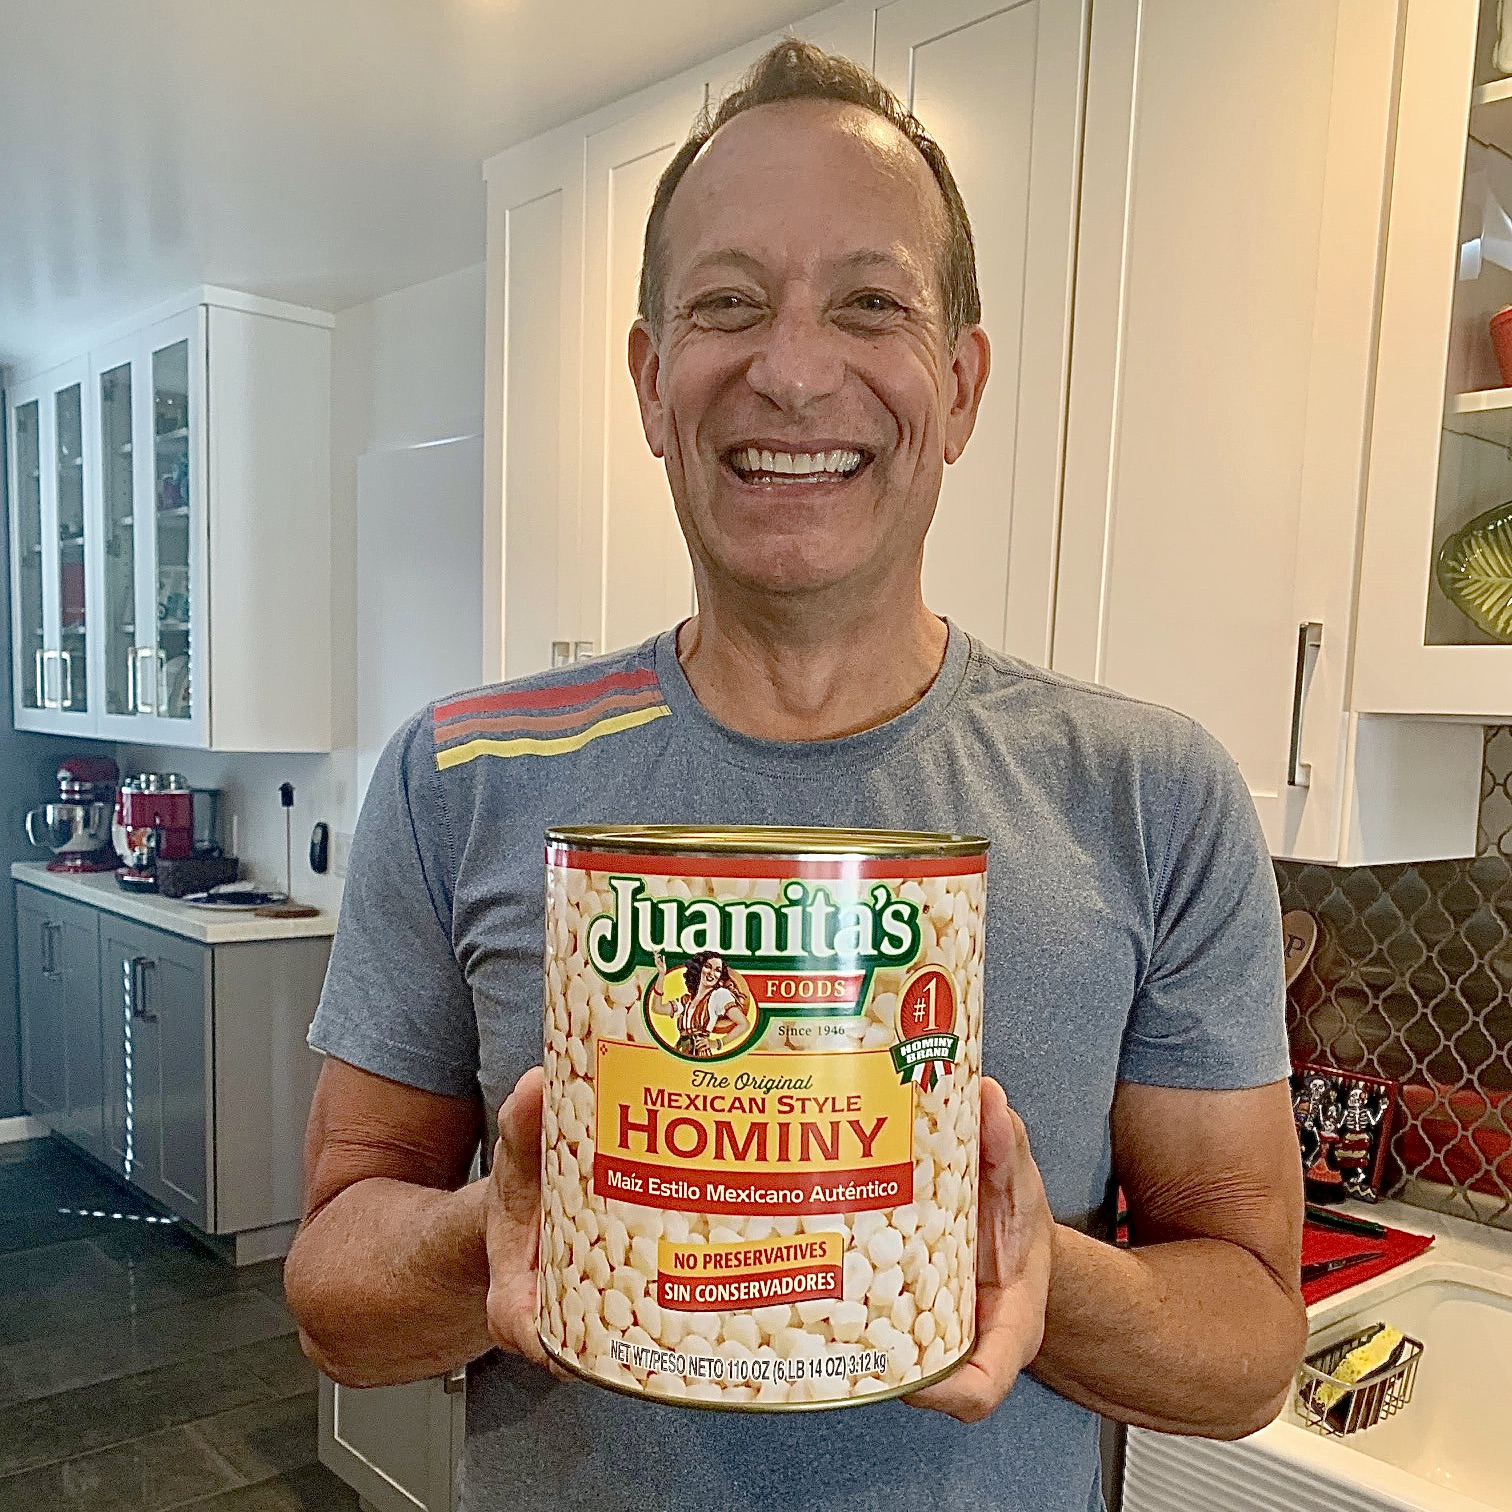 man holding giant can of Juanita's brand Mexican-style Hominy